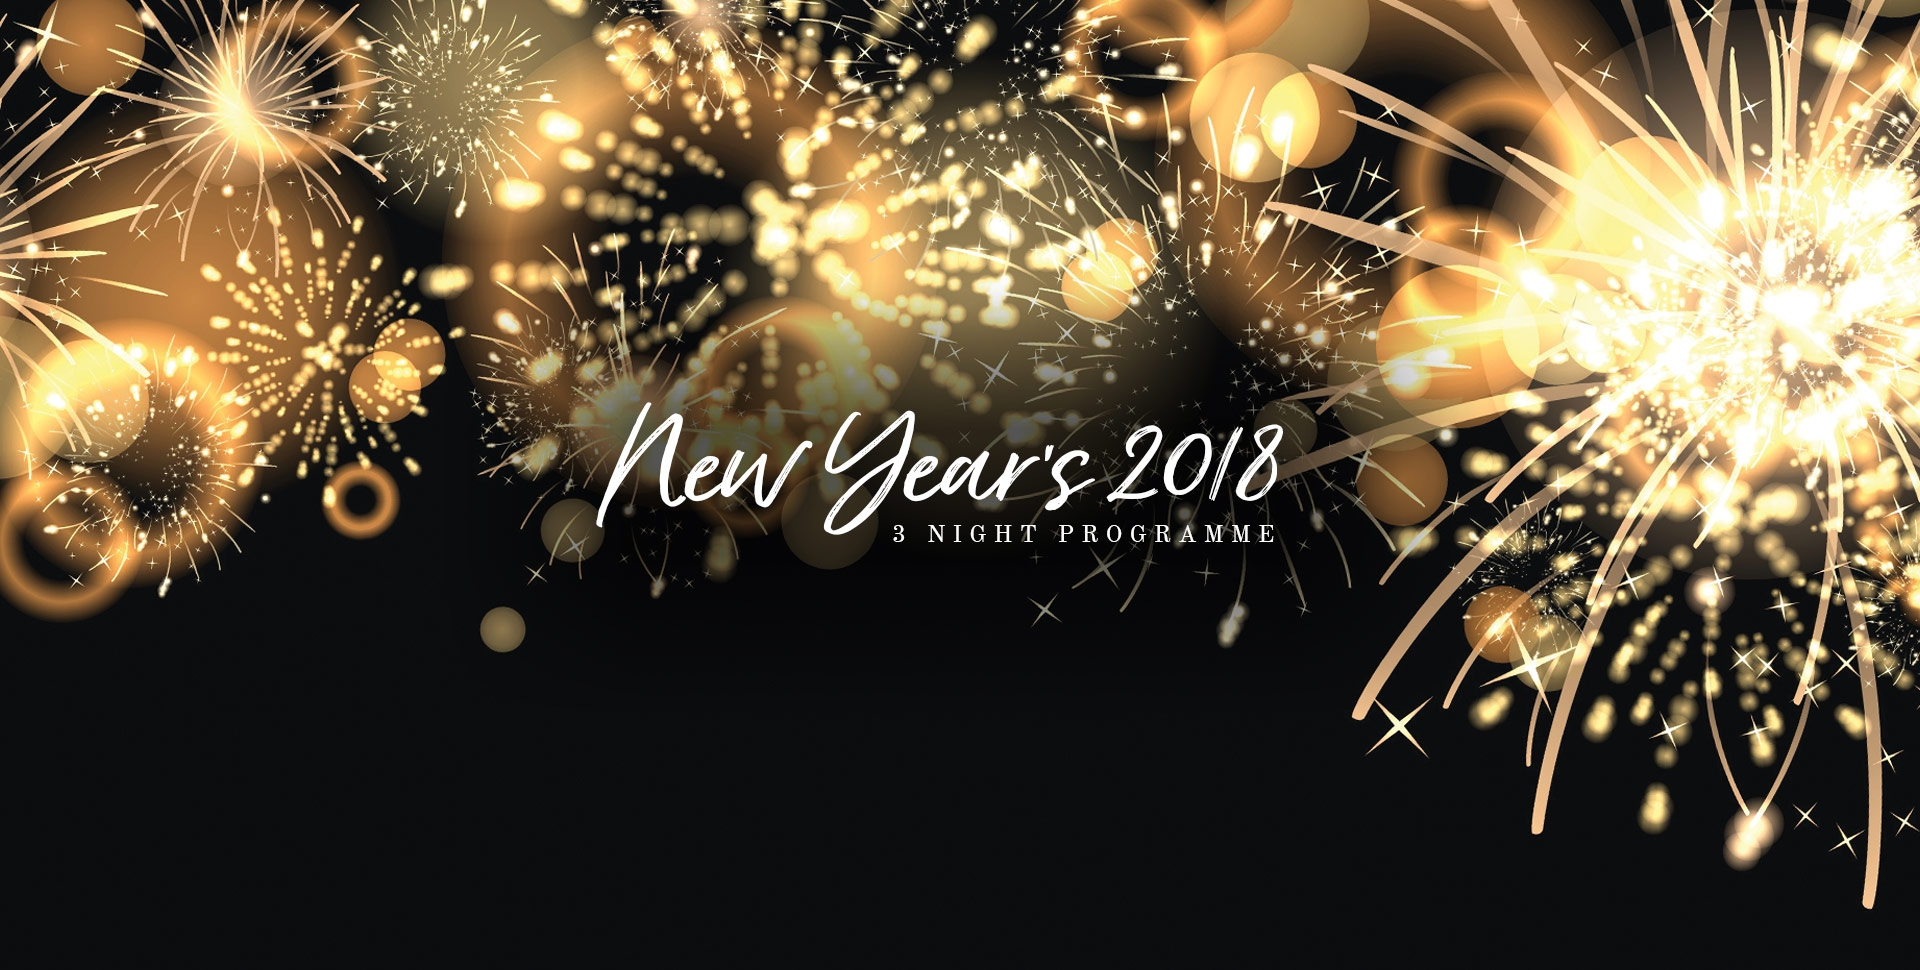 New Year's 2018 - 3 night programme